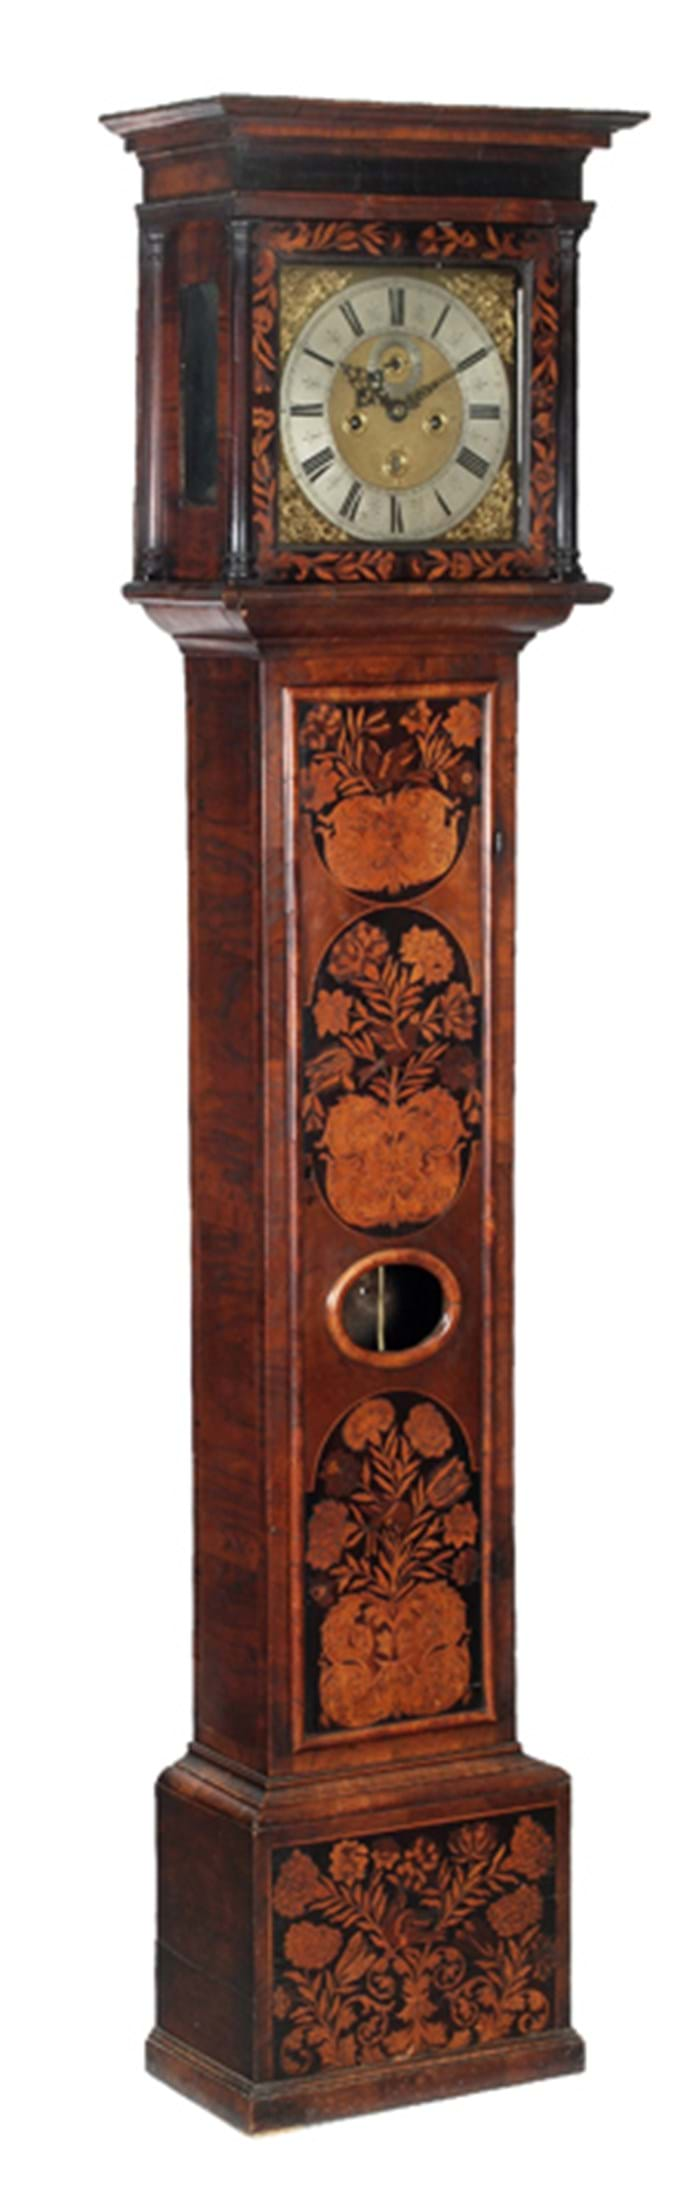 Walnut and floral marquetry clock by Thomas Baley